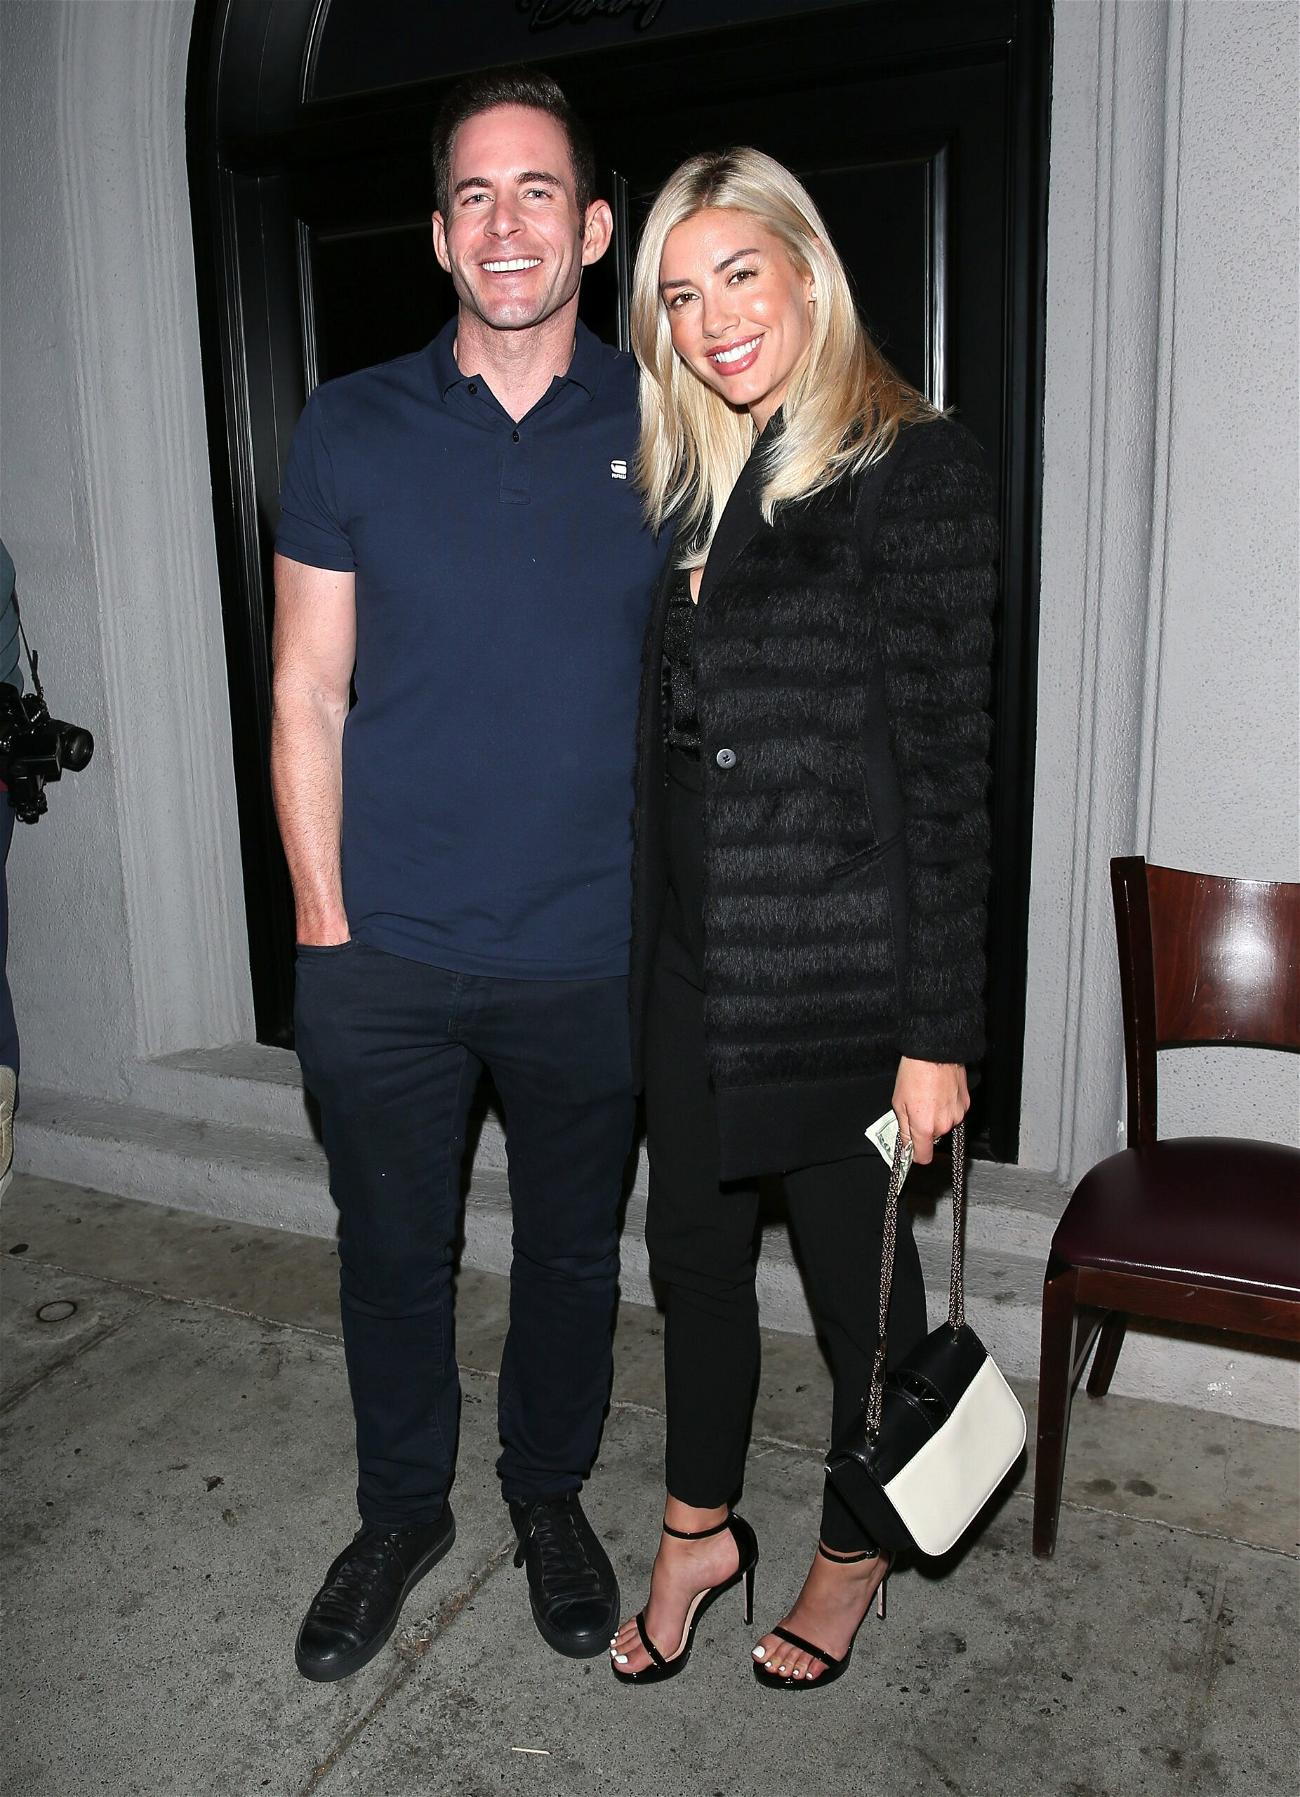 Tarek El Moussa Says Original Wedding Plans With Fiancée Was Completely Changed